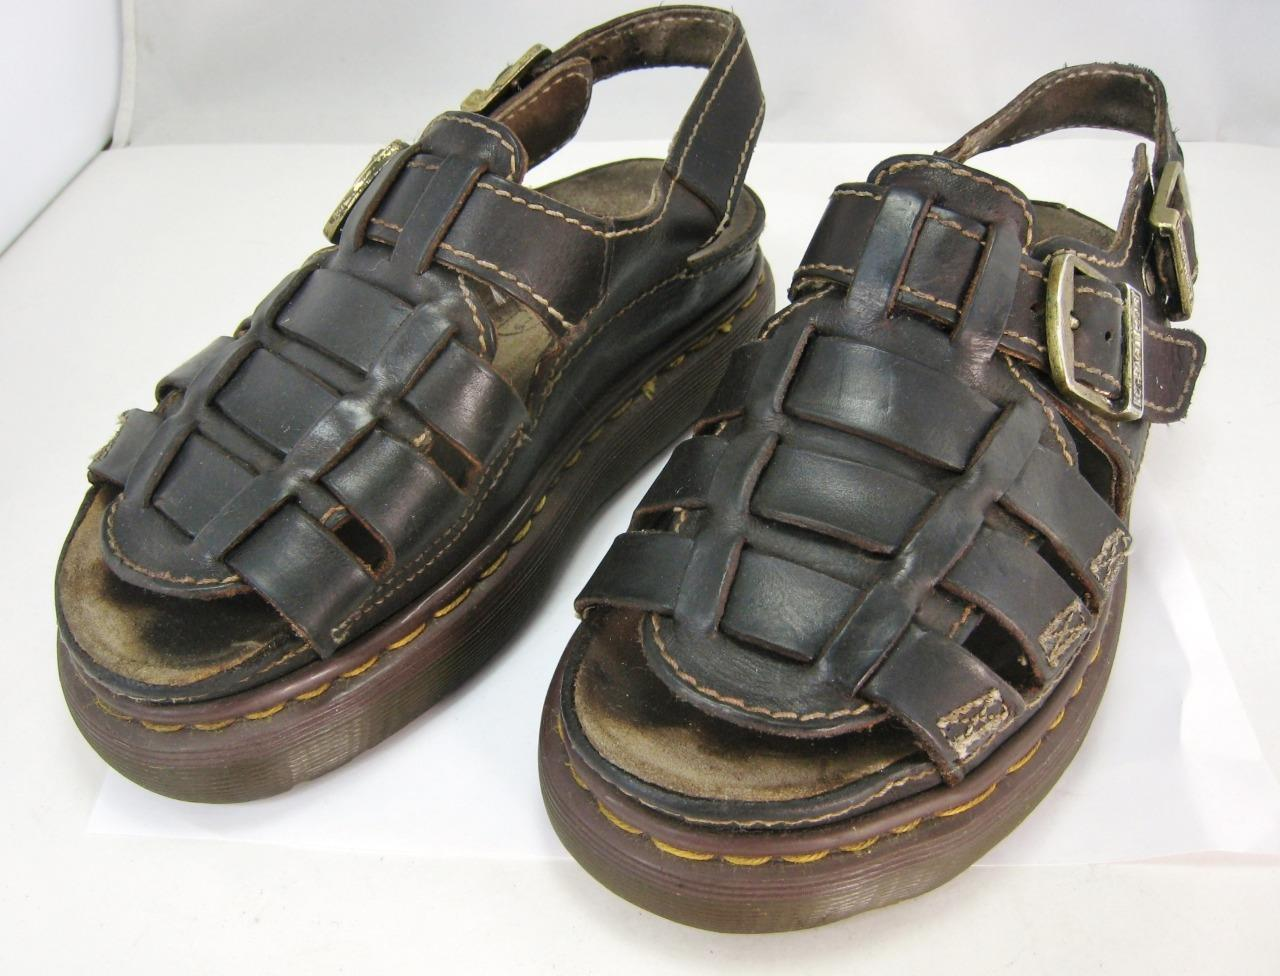 Doc Martens Classic Fisherman Leather Sandals 7 US Air Wair Chunky Comfort Shoes